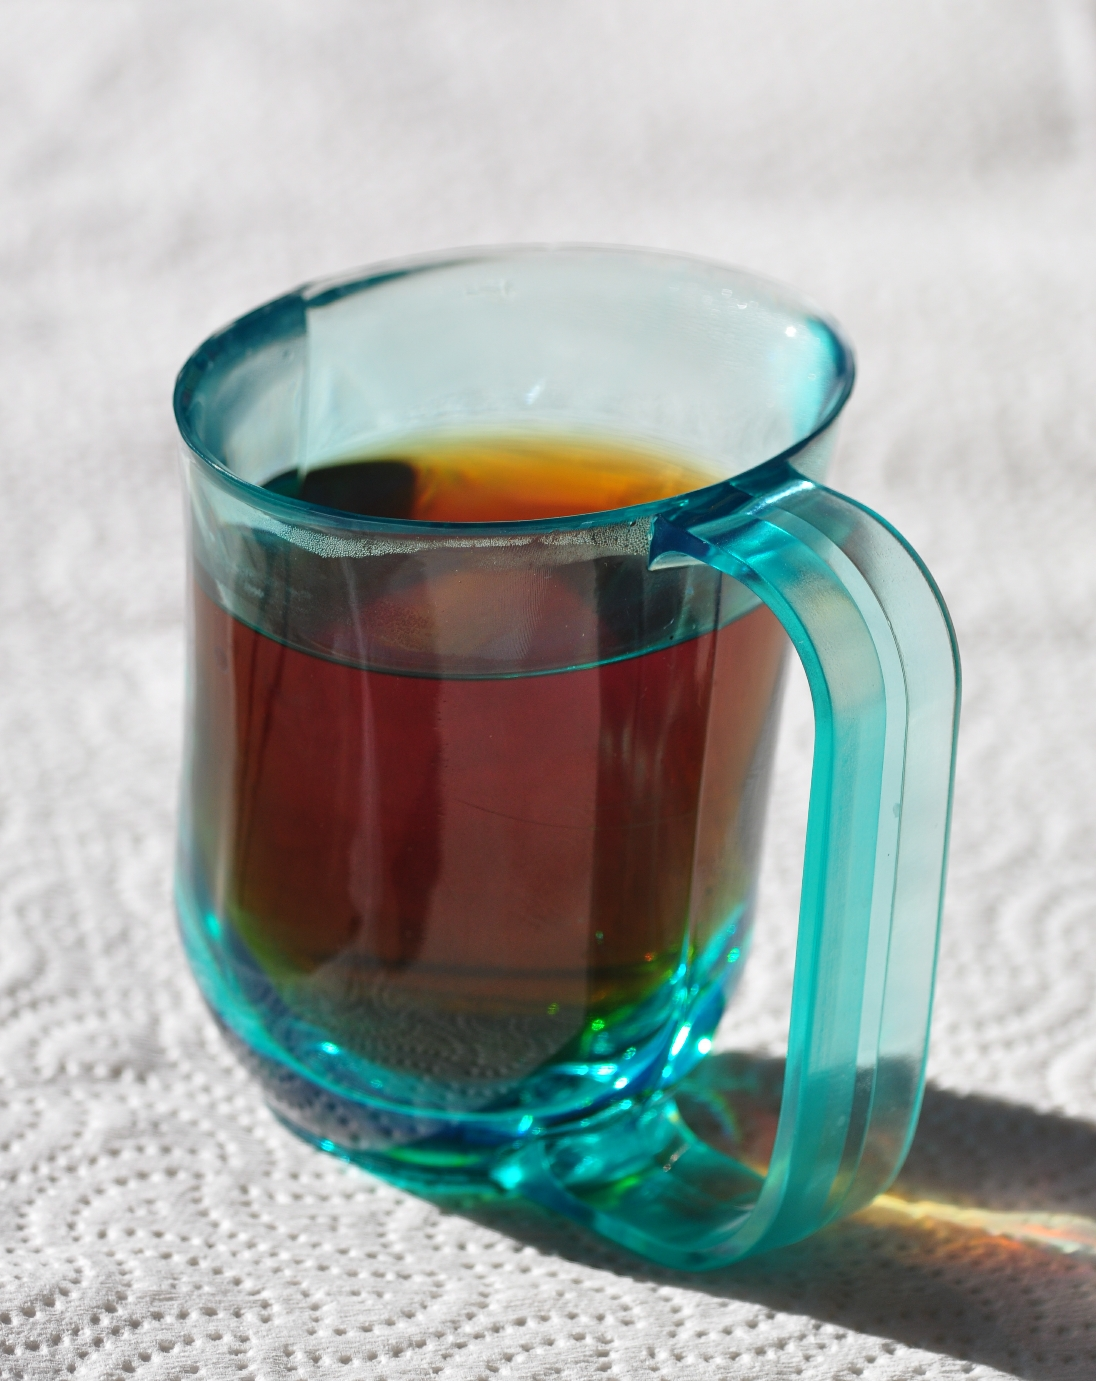 Dysphagia Cup For People Who Have Trouble Swallowing